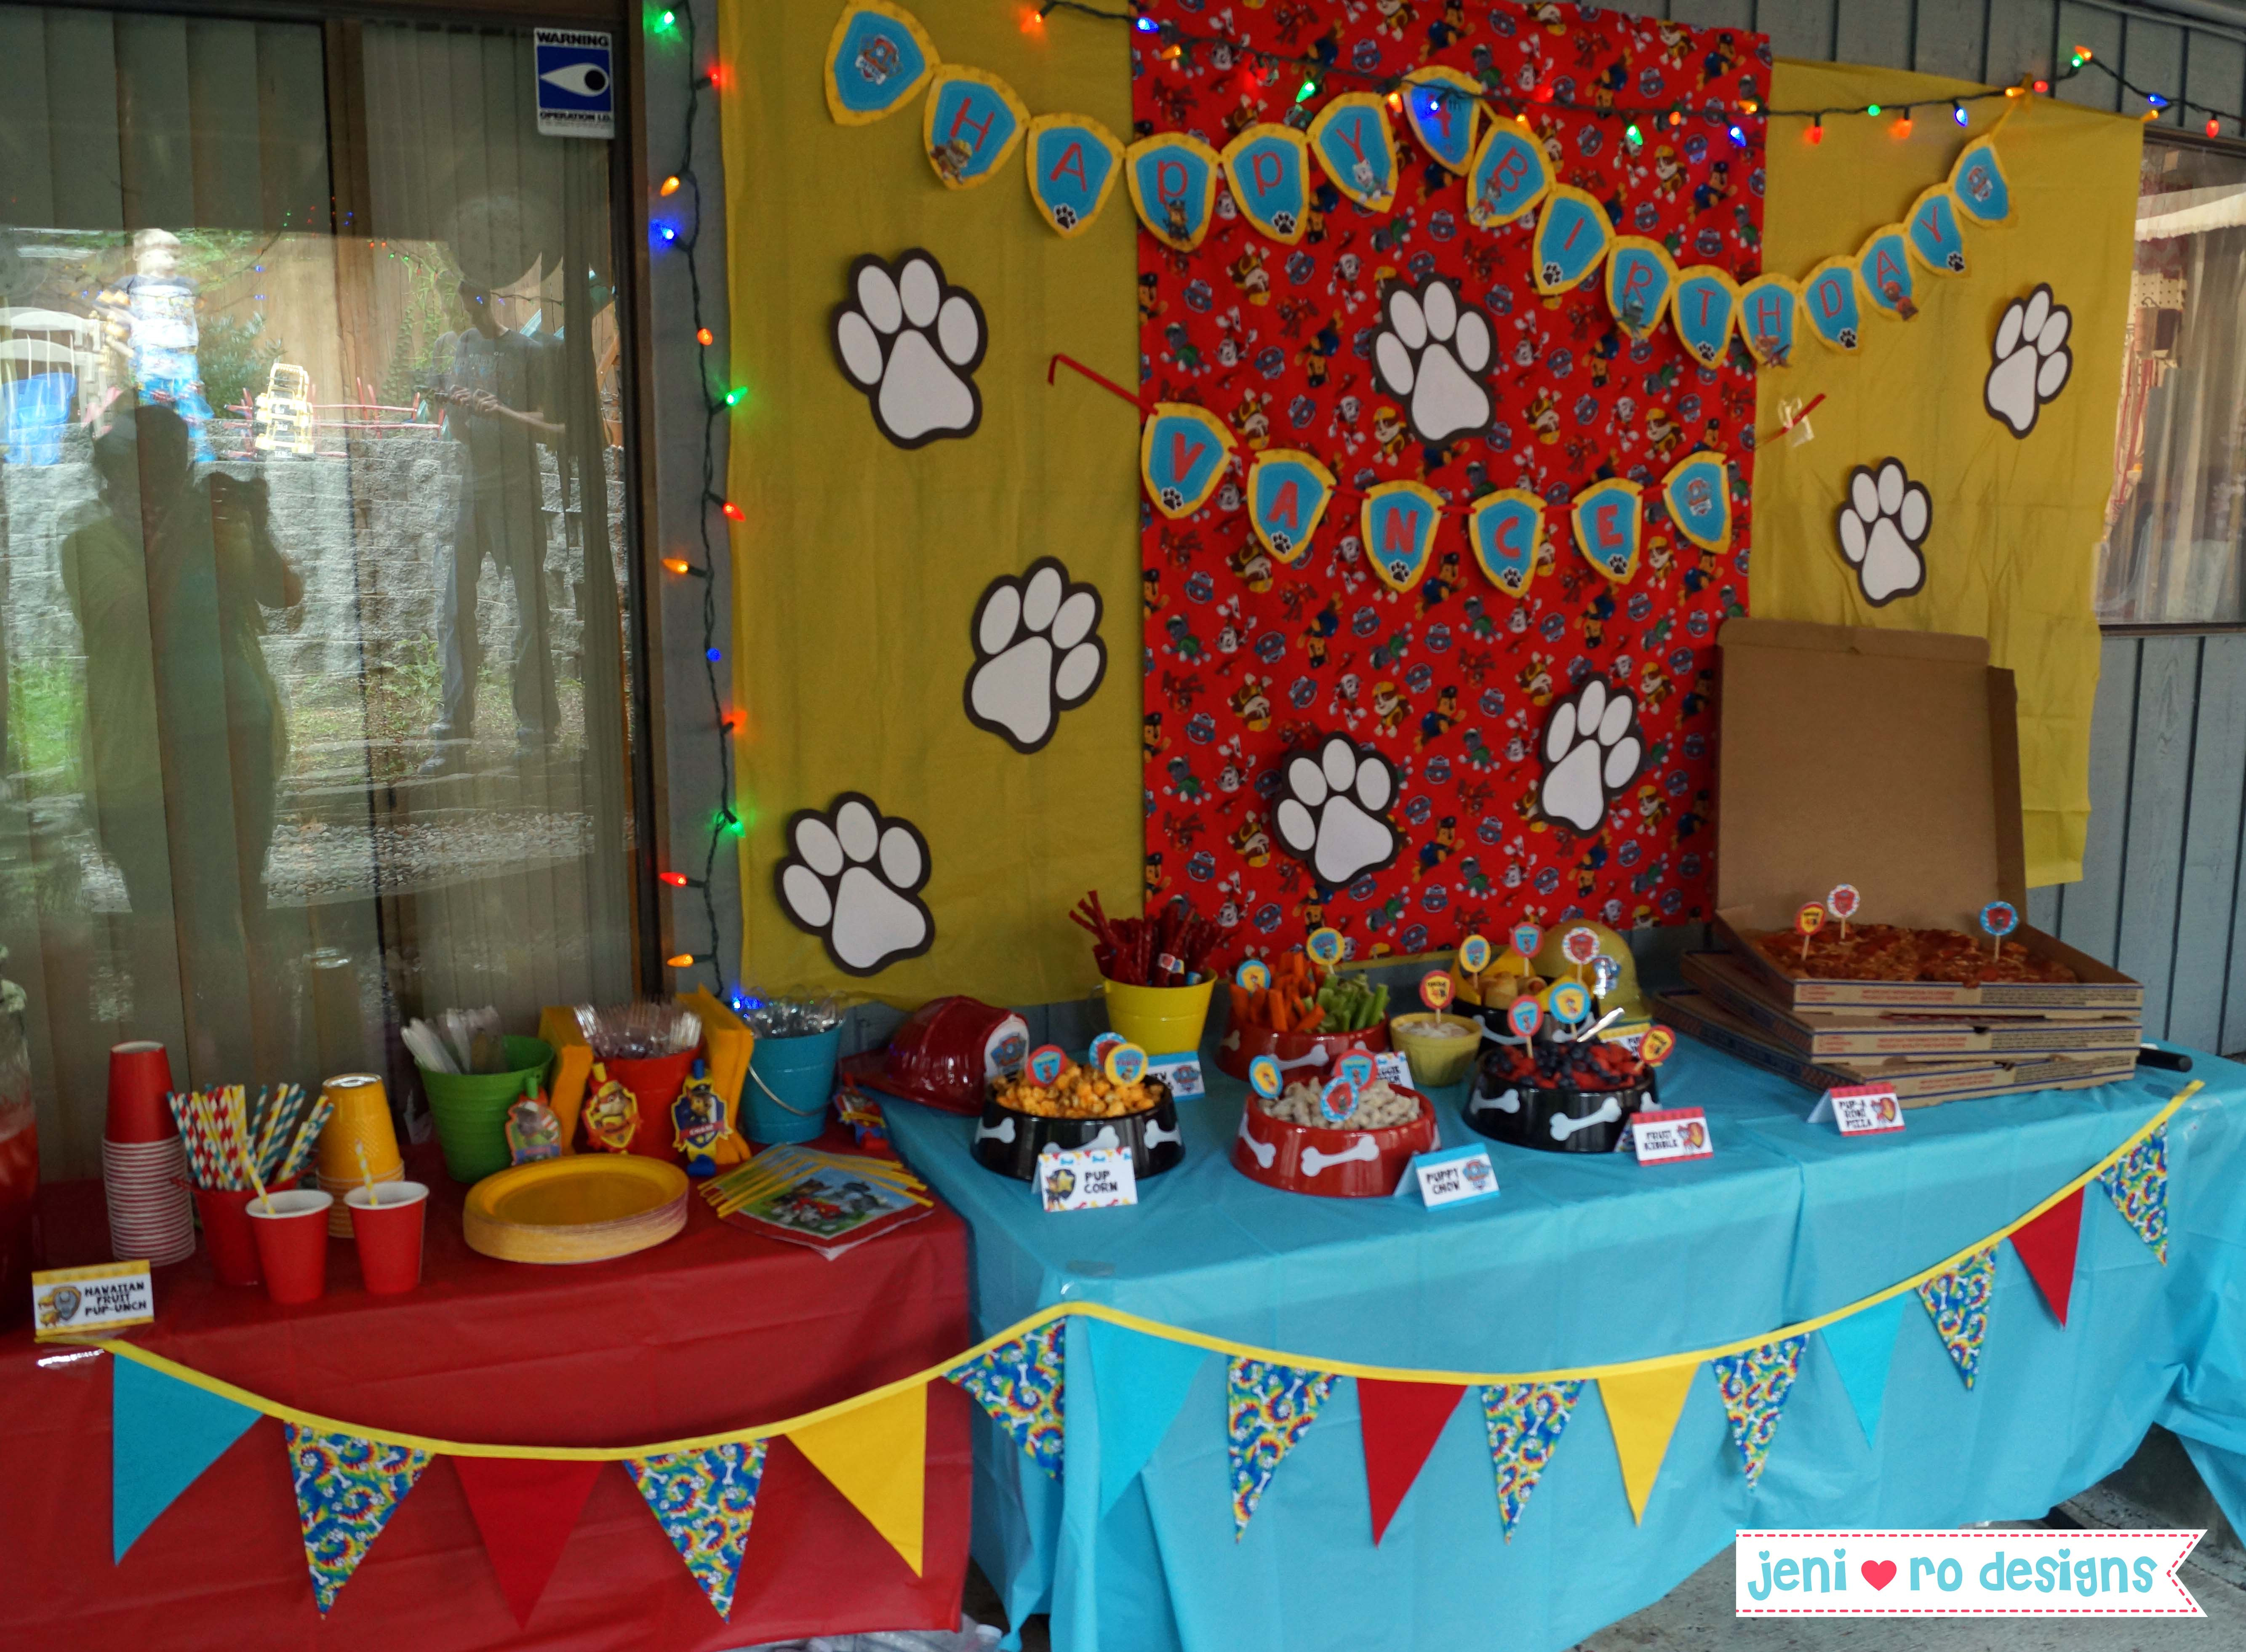 Best ideas about Paw Patrol Birthday Decor . Save or Pin Mr V's Paw Patrol 4th Birthday Party – The details Now.